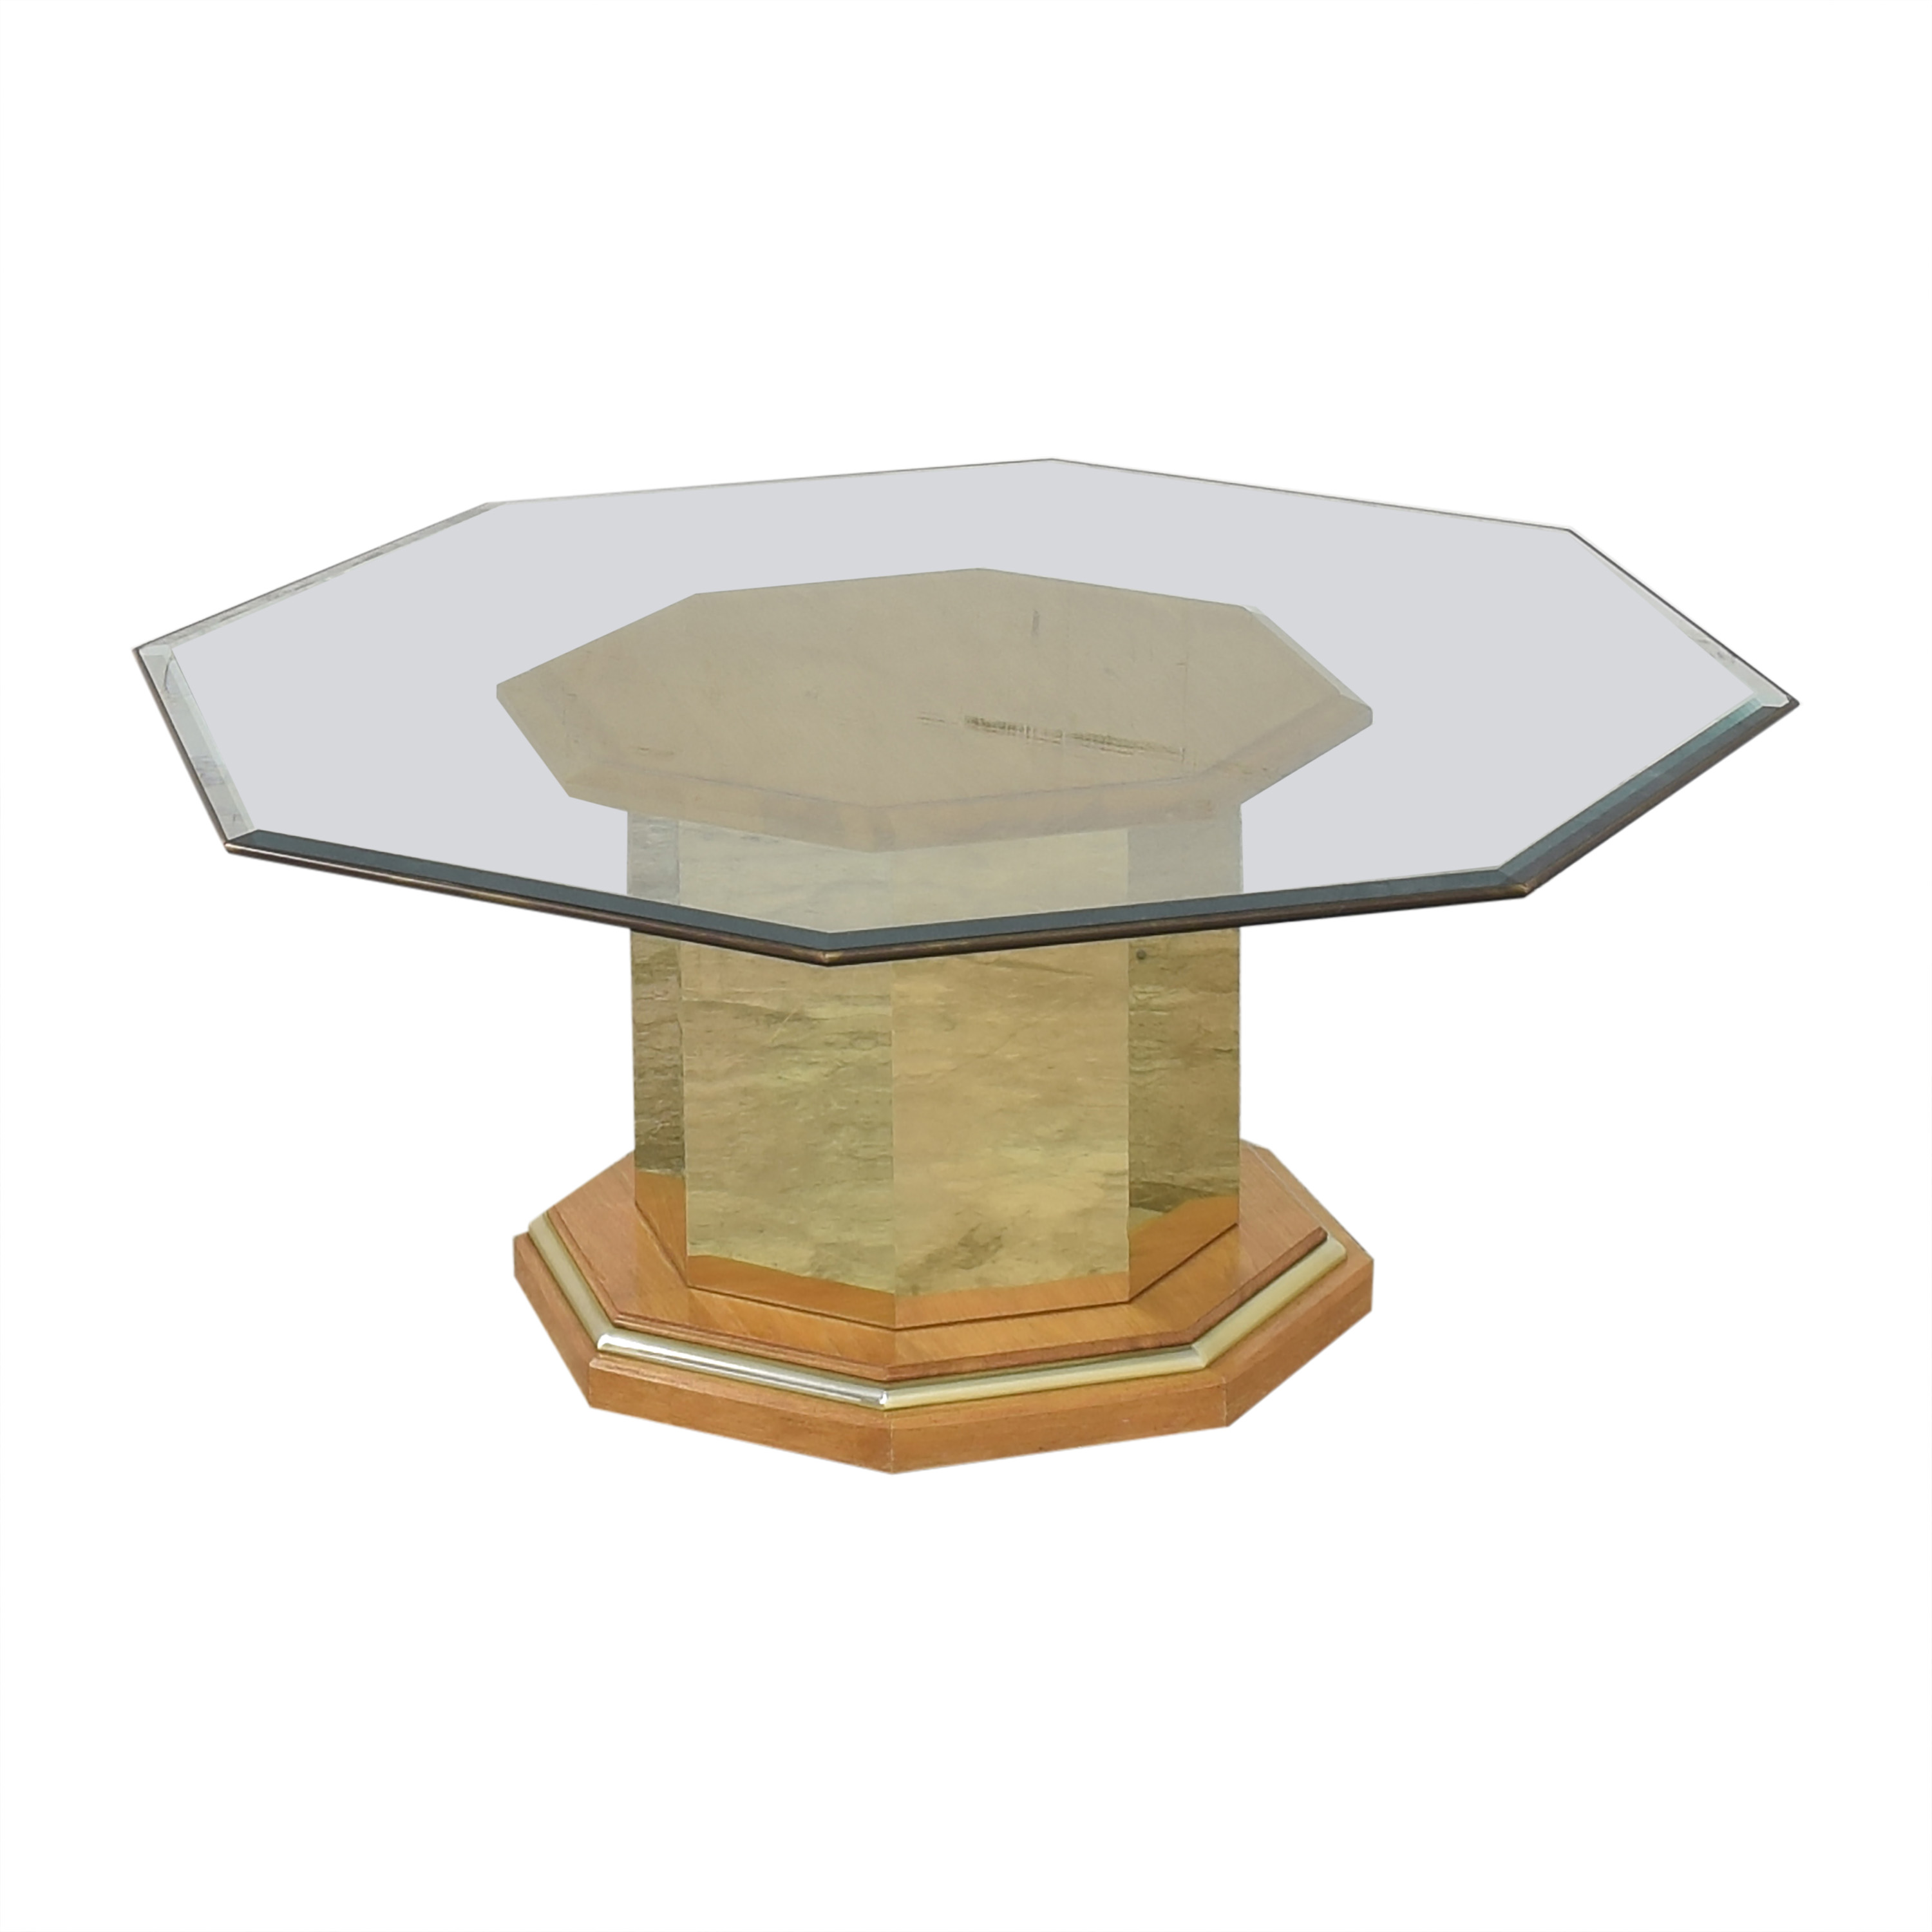 Thomasville Octagonal Coffee Table / Coffee Tables